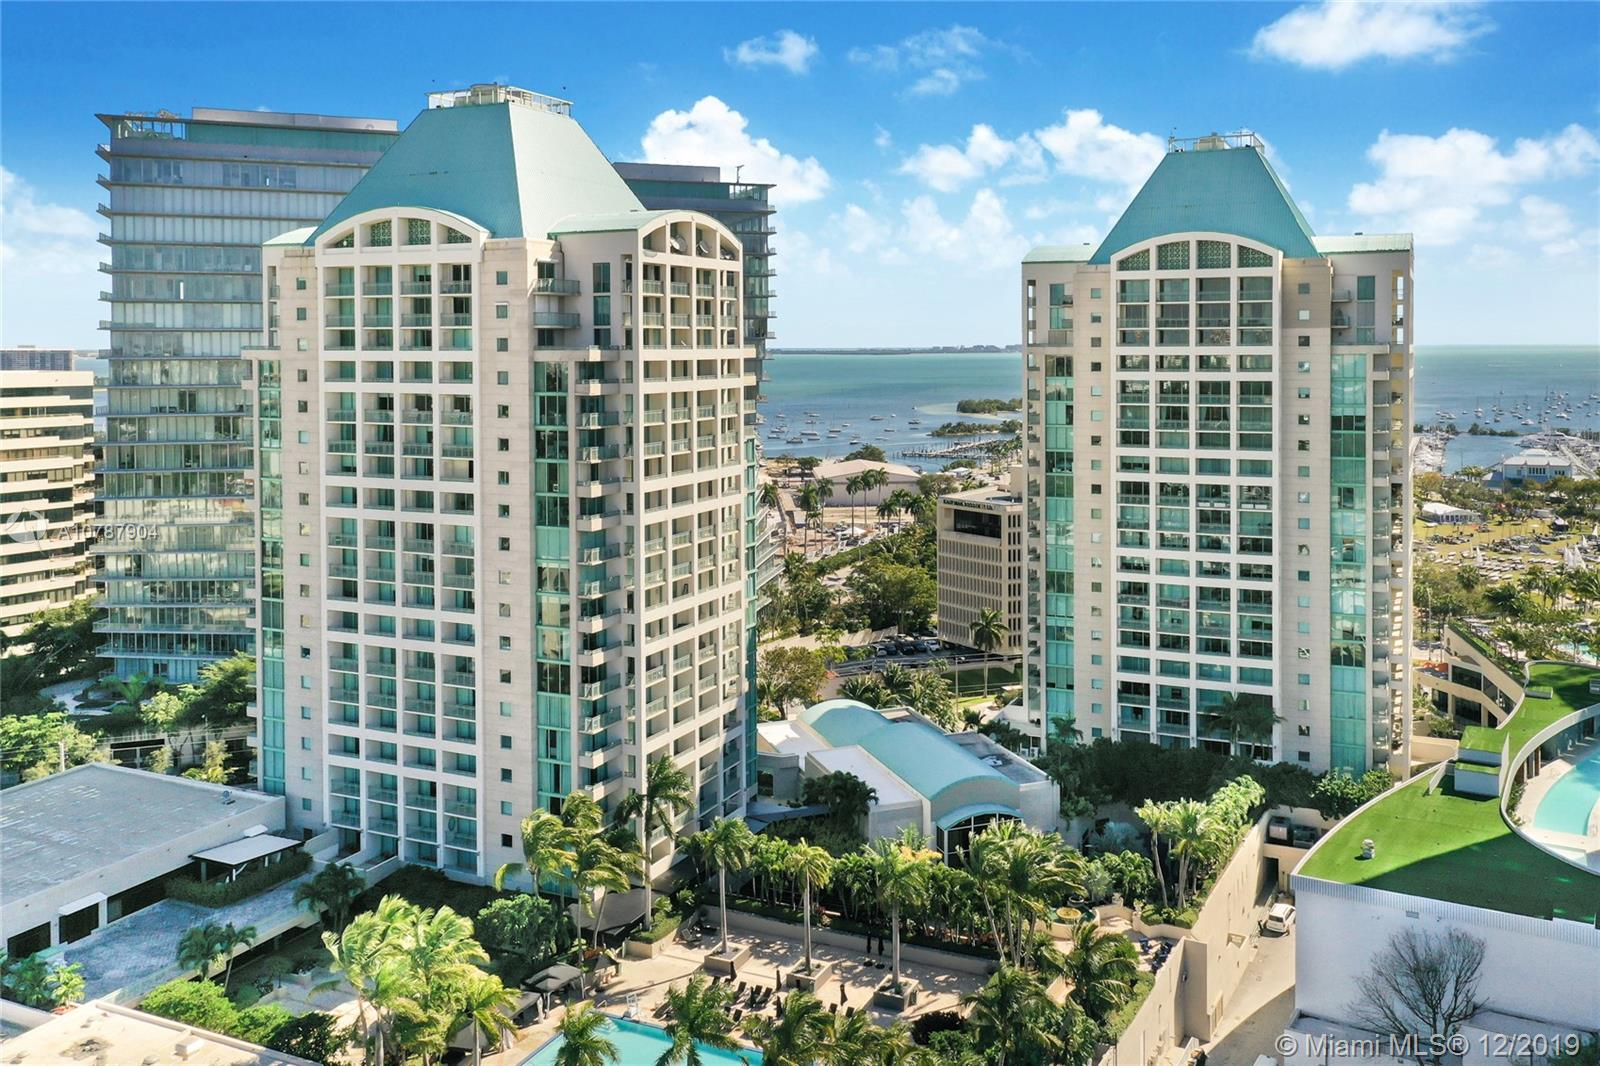 Legendary Ritz-Carlton luxury and lifestyle in the heart of Coconut Grove across from Biscayne Bay, Regatta park and the marina. Access to all 5-star hotel amenities including full-service pool, spa, fitness center, restaurants & bars, concierge and valet parking plus residents-only amenities. Walking distance to waterfront parks, restaurants, shops and entertainment. Easy drive to Miami Beach, Downtown Miami, Coral Gables and the Miami International Airport.